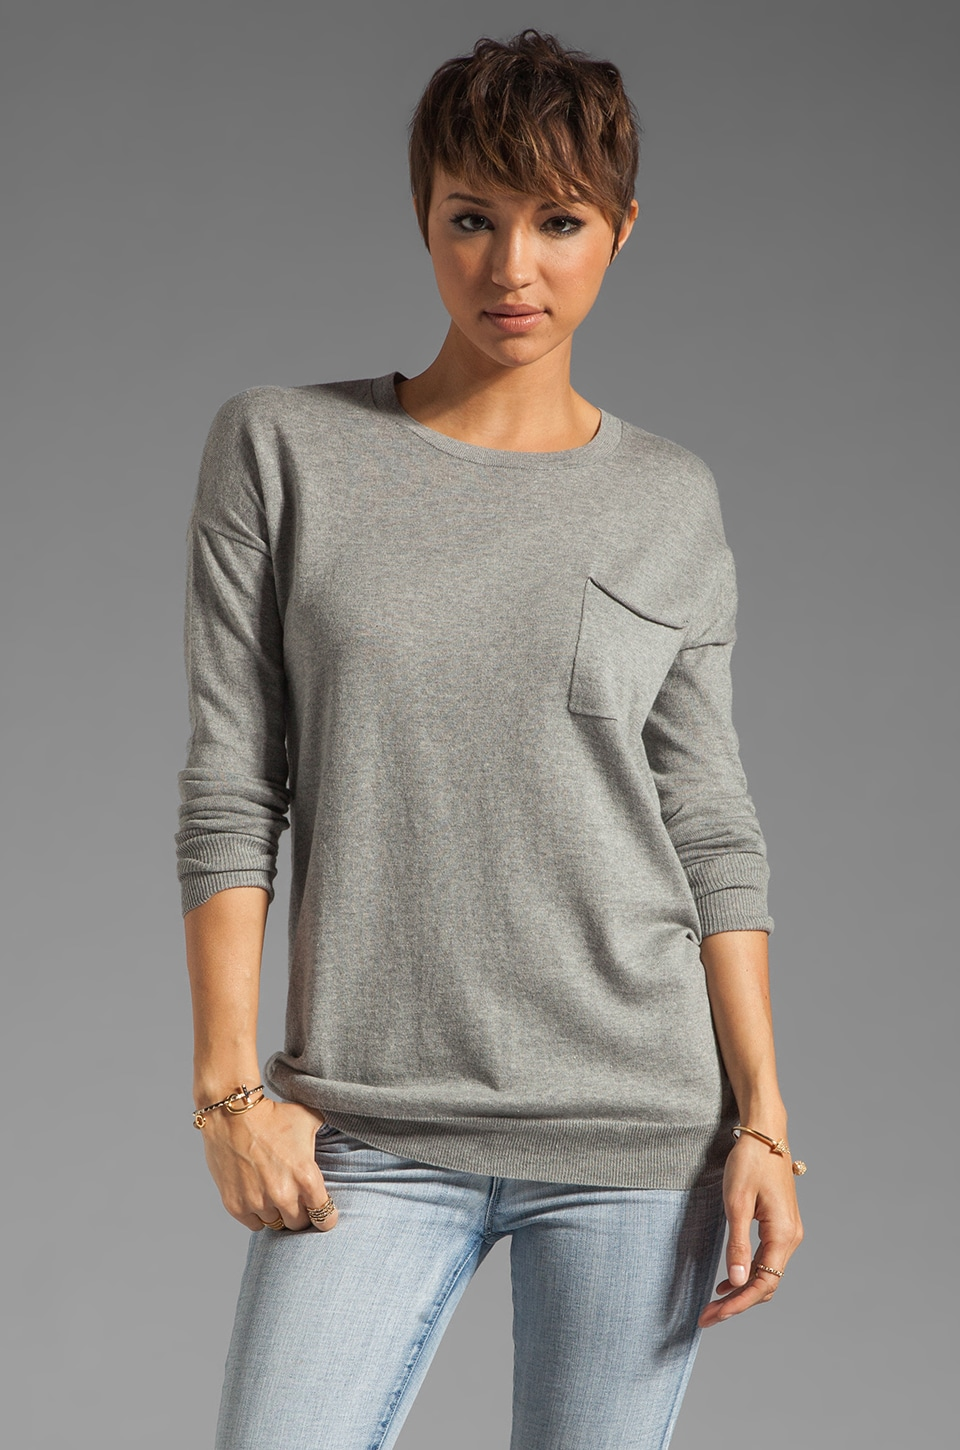 Theory Cashmere Blend Tollie Pocket Sweater in Clear Heather